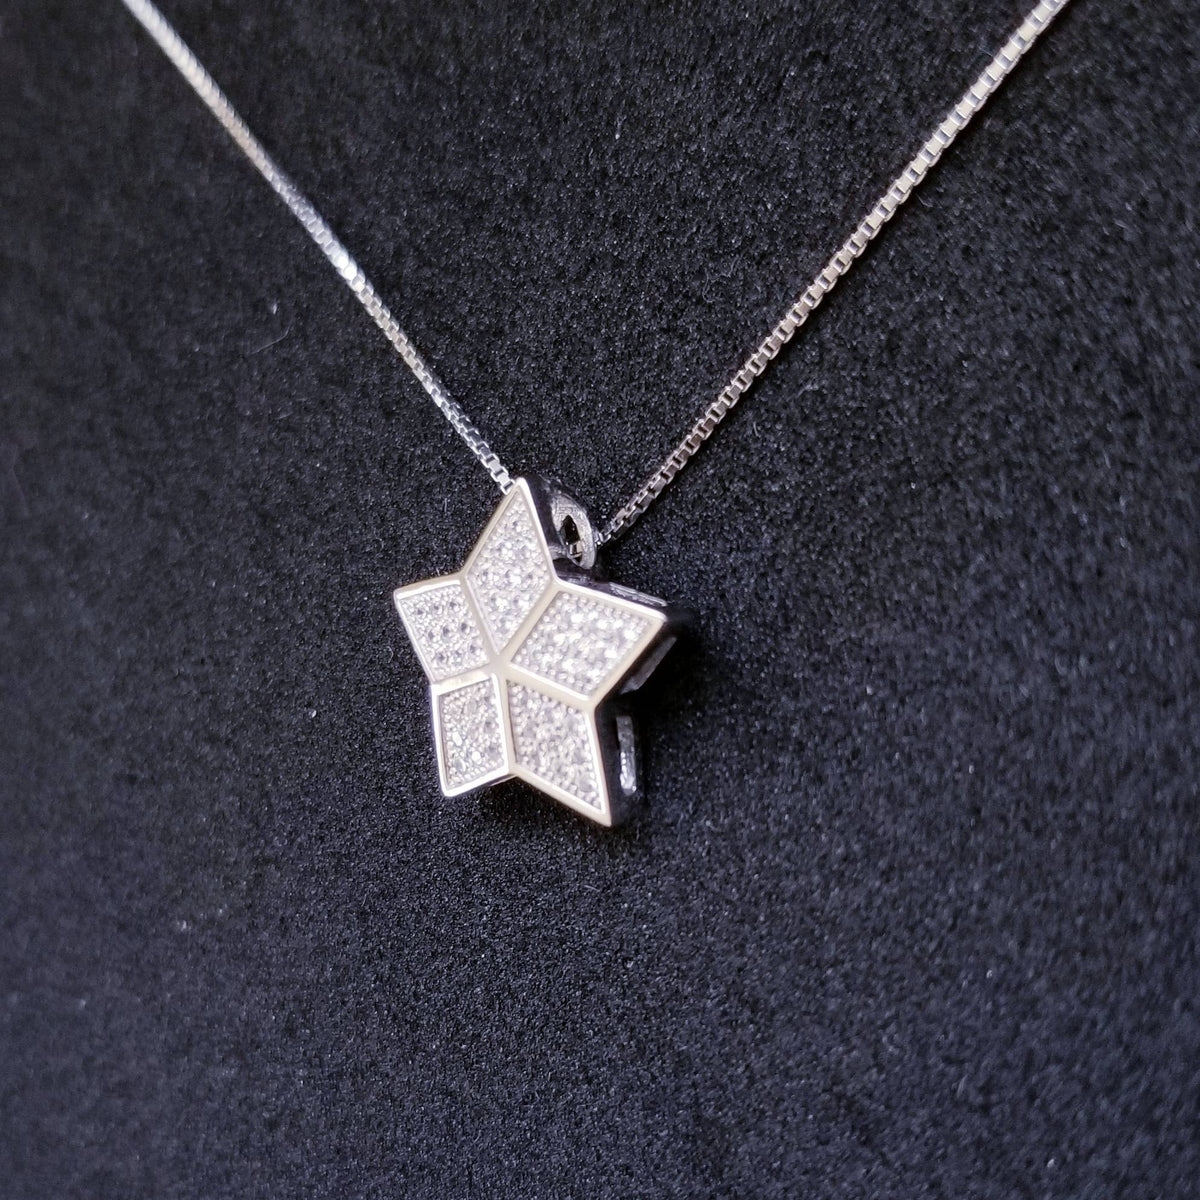 New 14k White Gold On 925 Sterling Silver Small Cute Star CZ Stones Pendant Free Chain